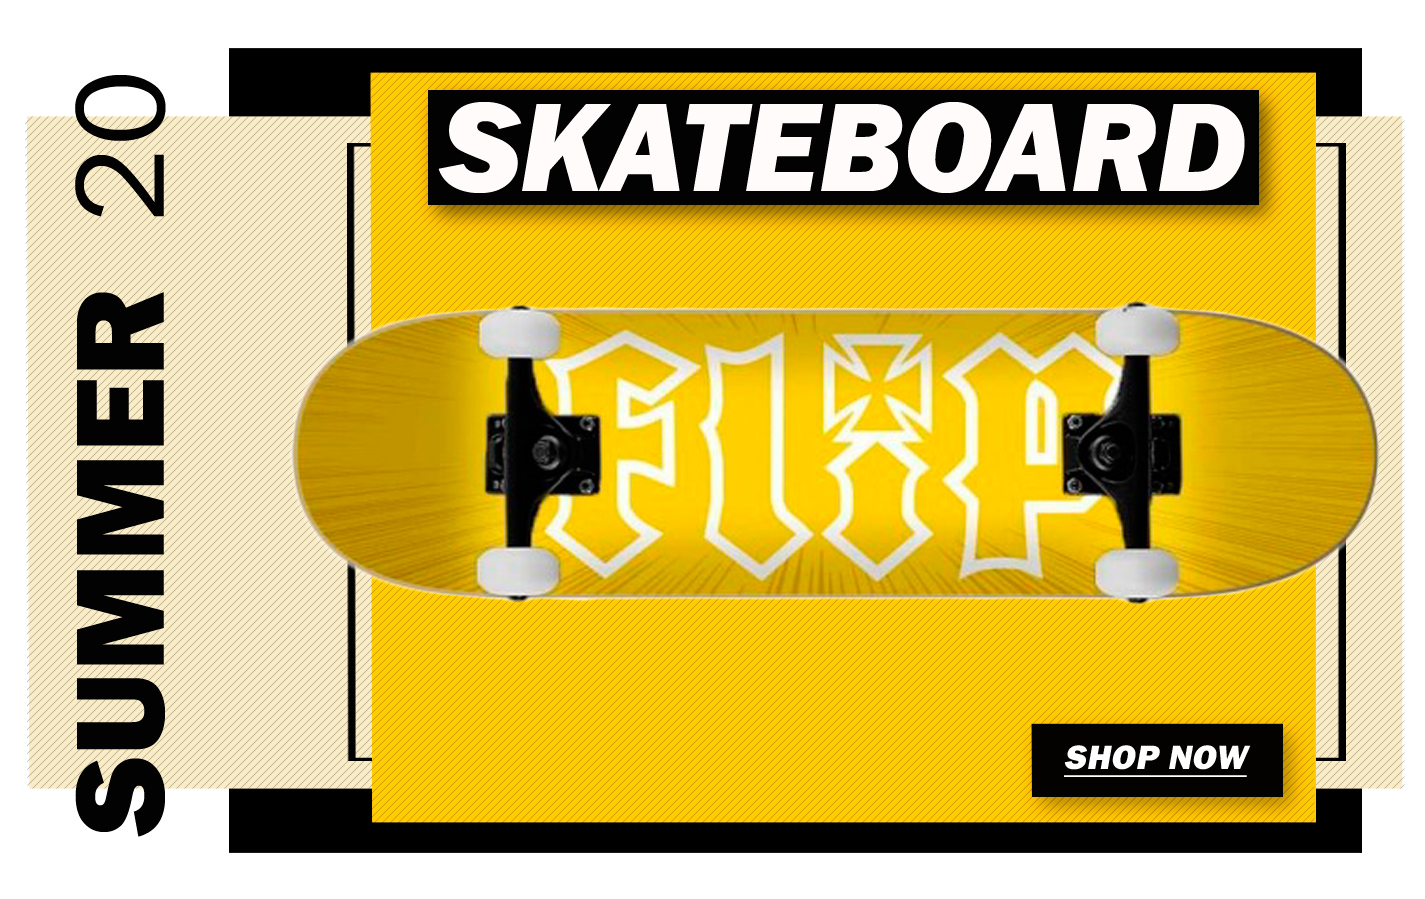 The latest Skateboards at the best prices all at Black Sheep Skateboard Shop Manchester